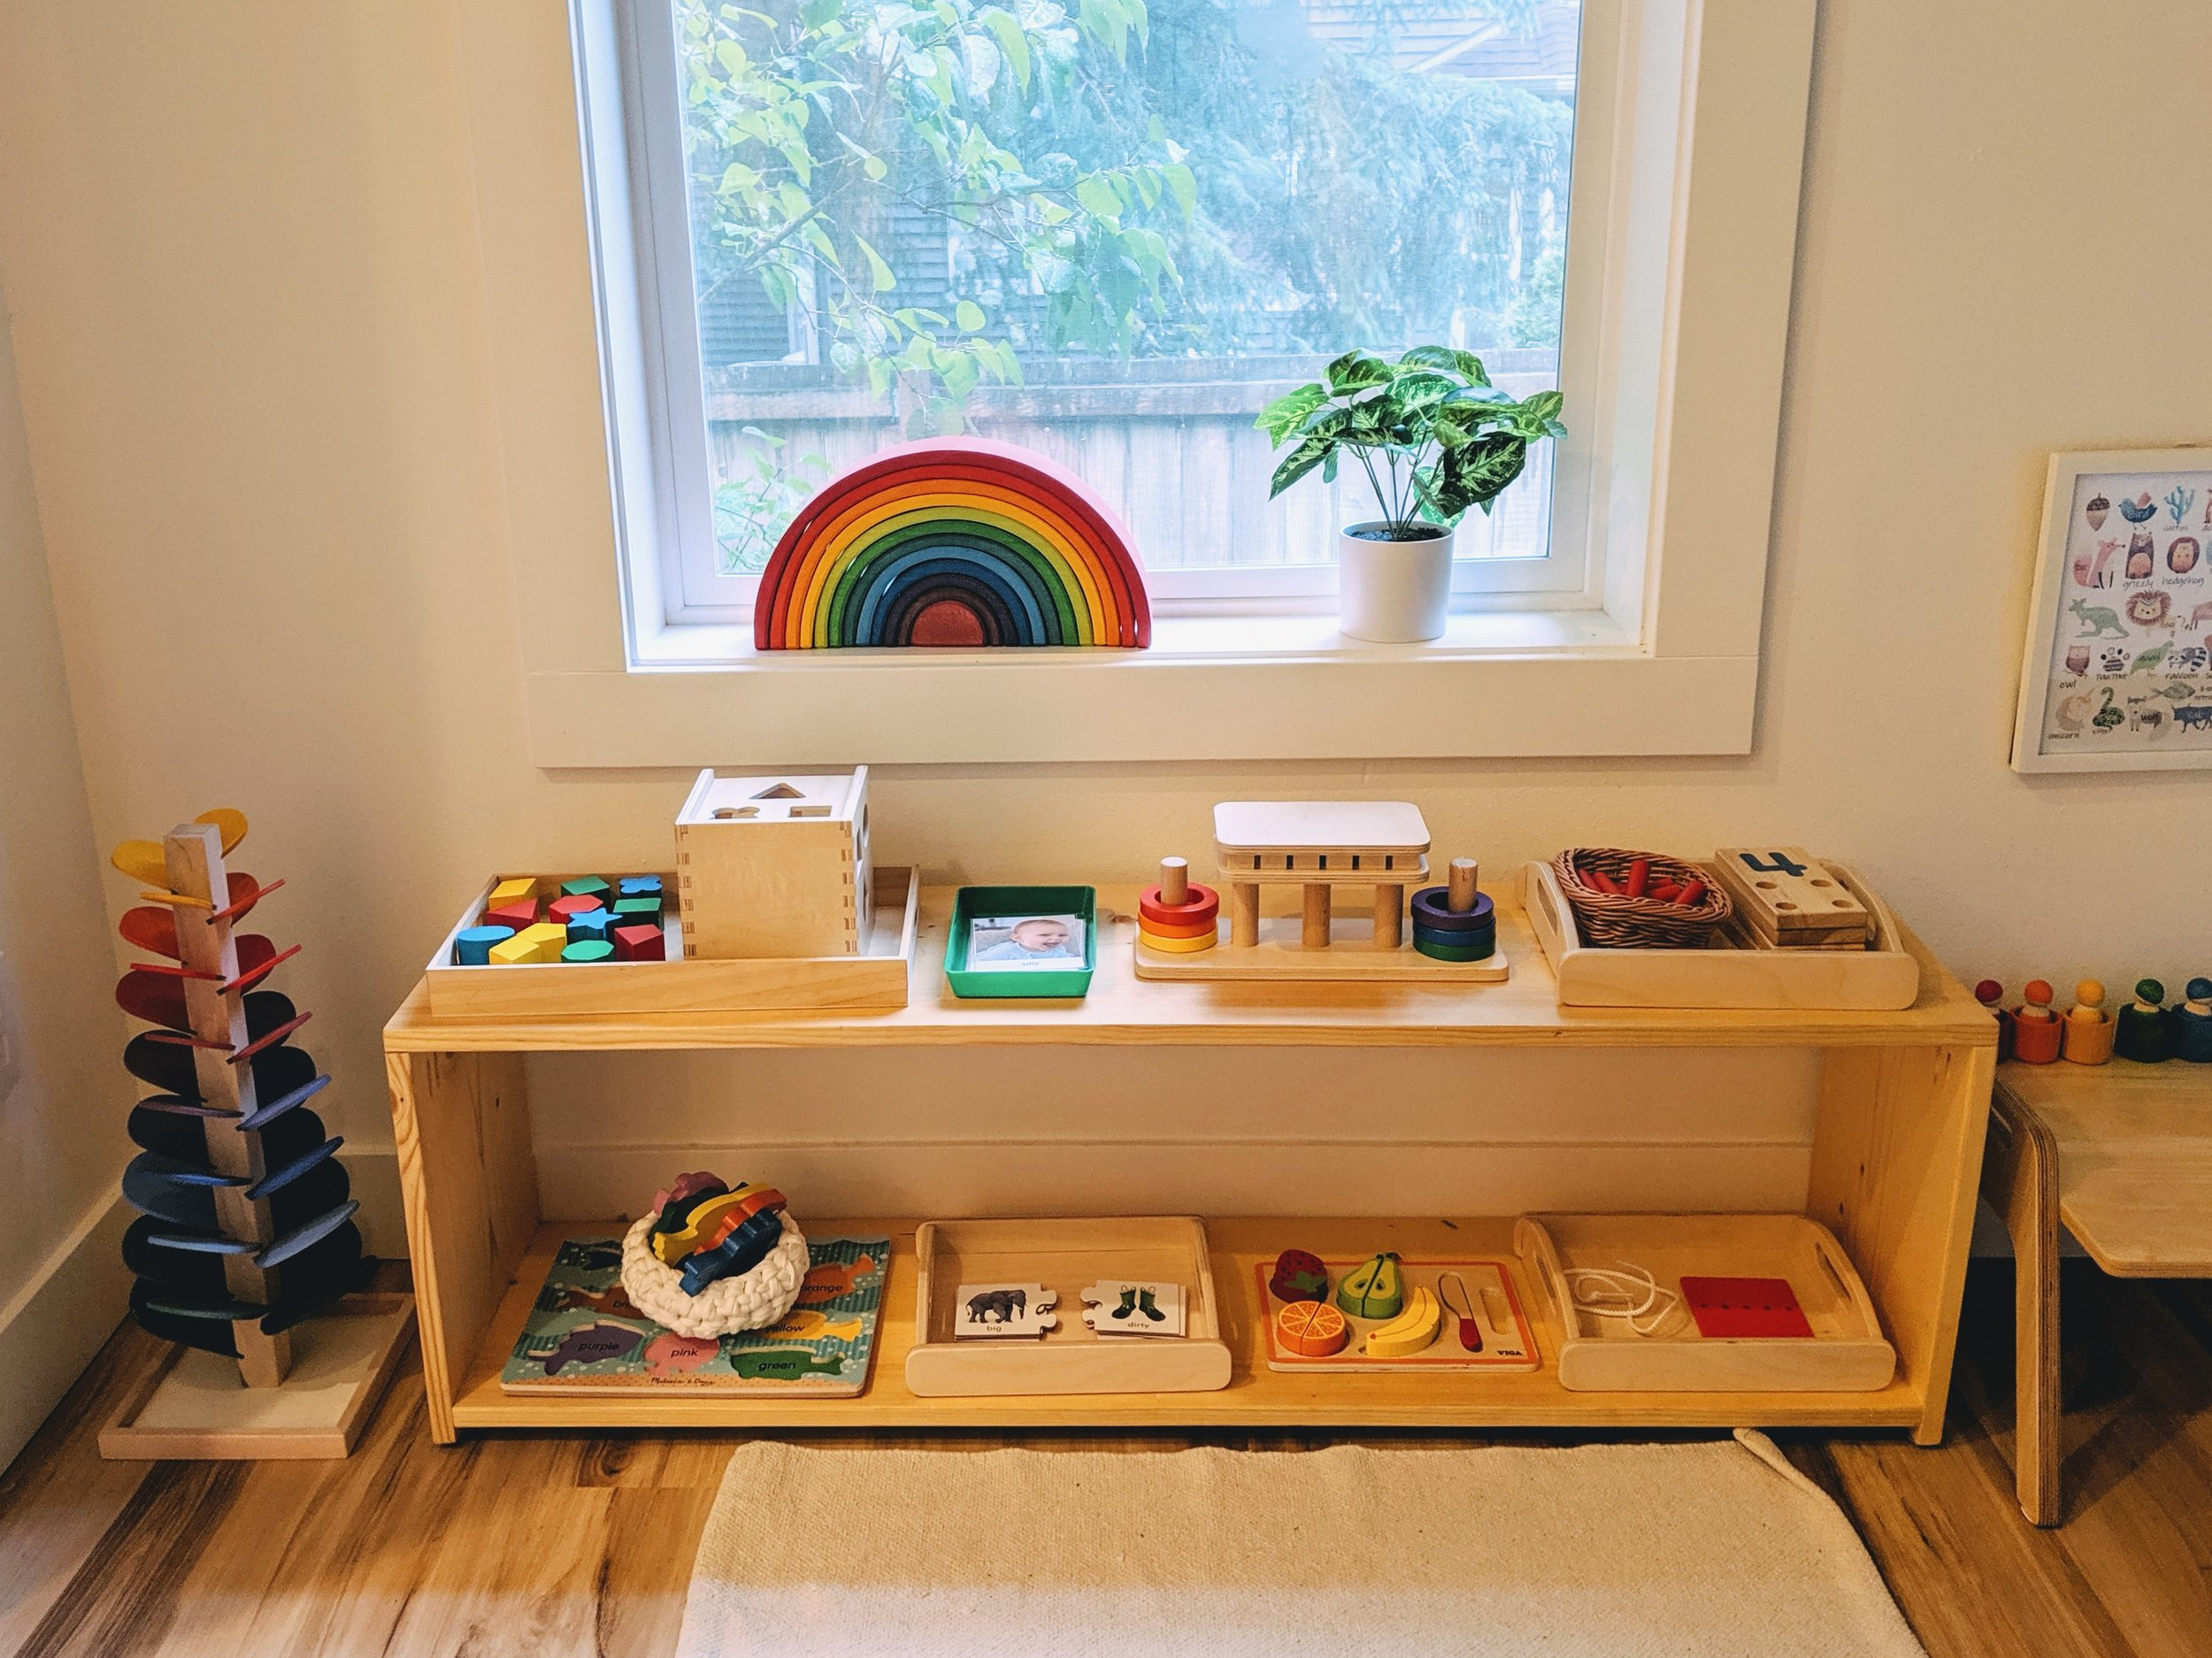 Shelfie at 26 Months - Montessori in Real Life